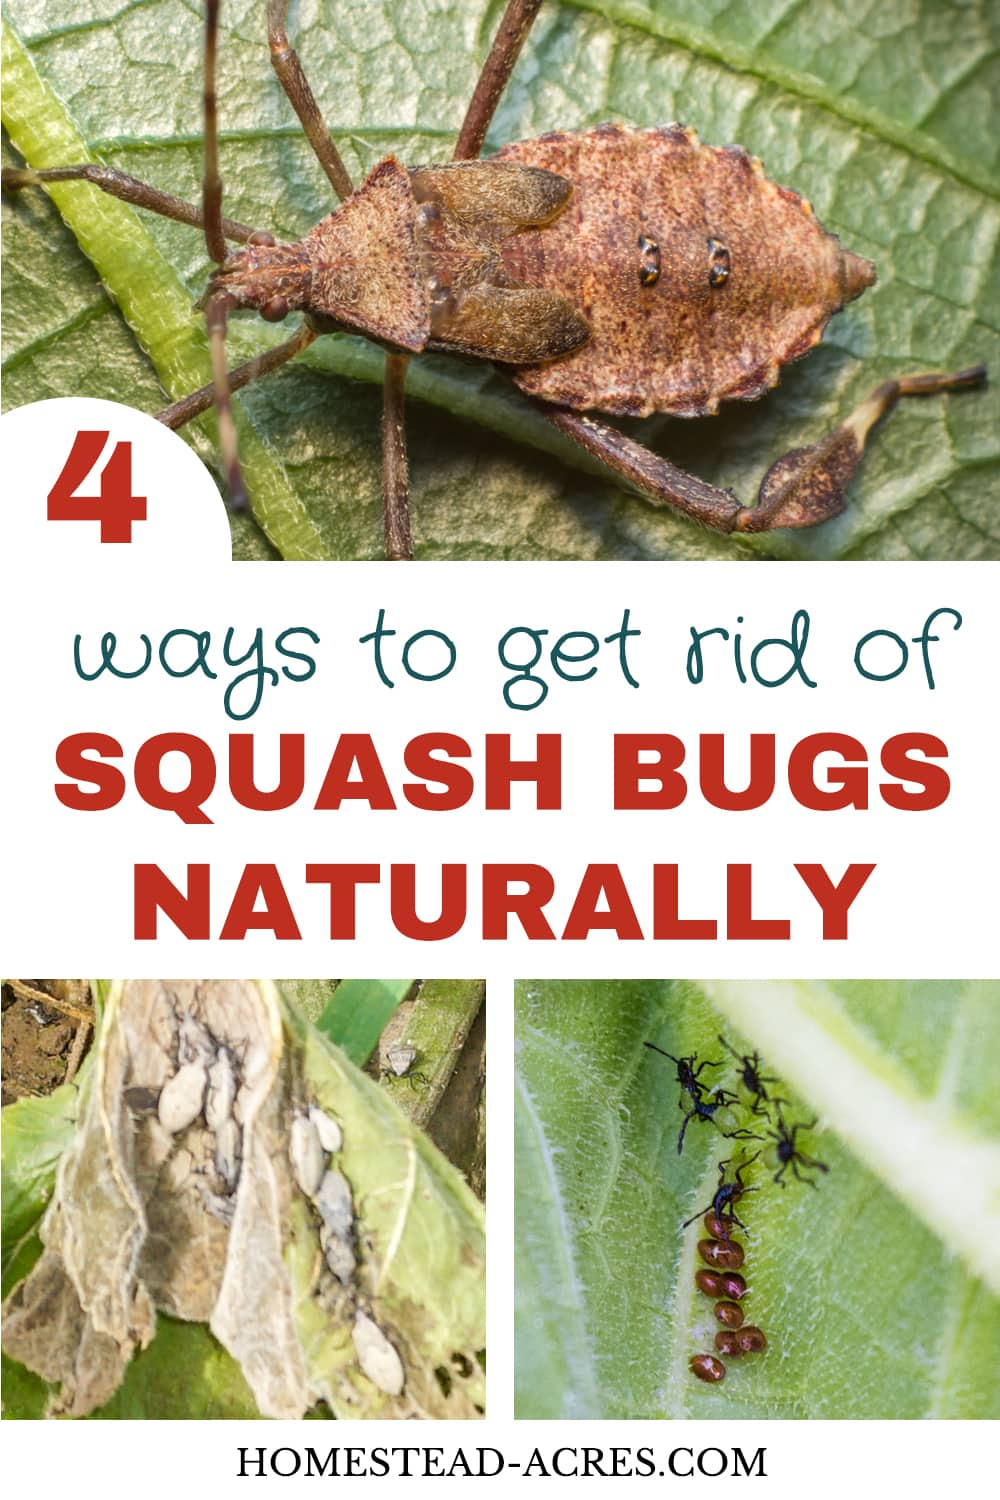 How To Get Rid Of Squash Bugs Homestead Acres